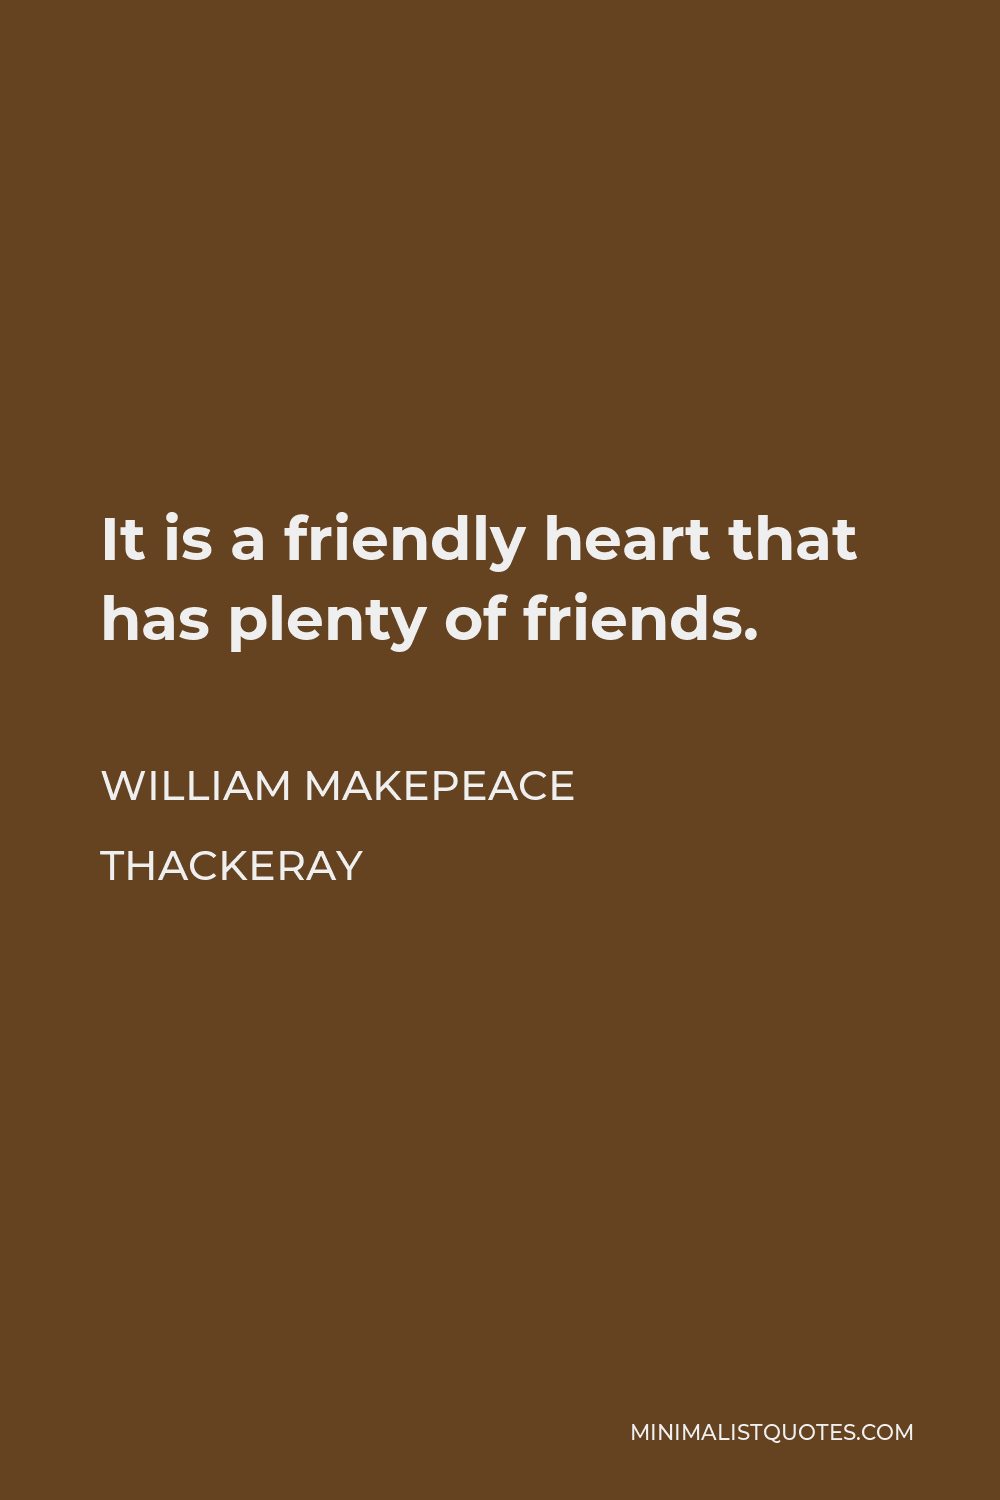 William Makepeace Thackeray Quote - It is a friendly heart that has plenty of friends.